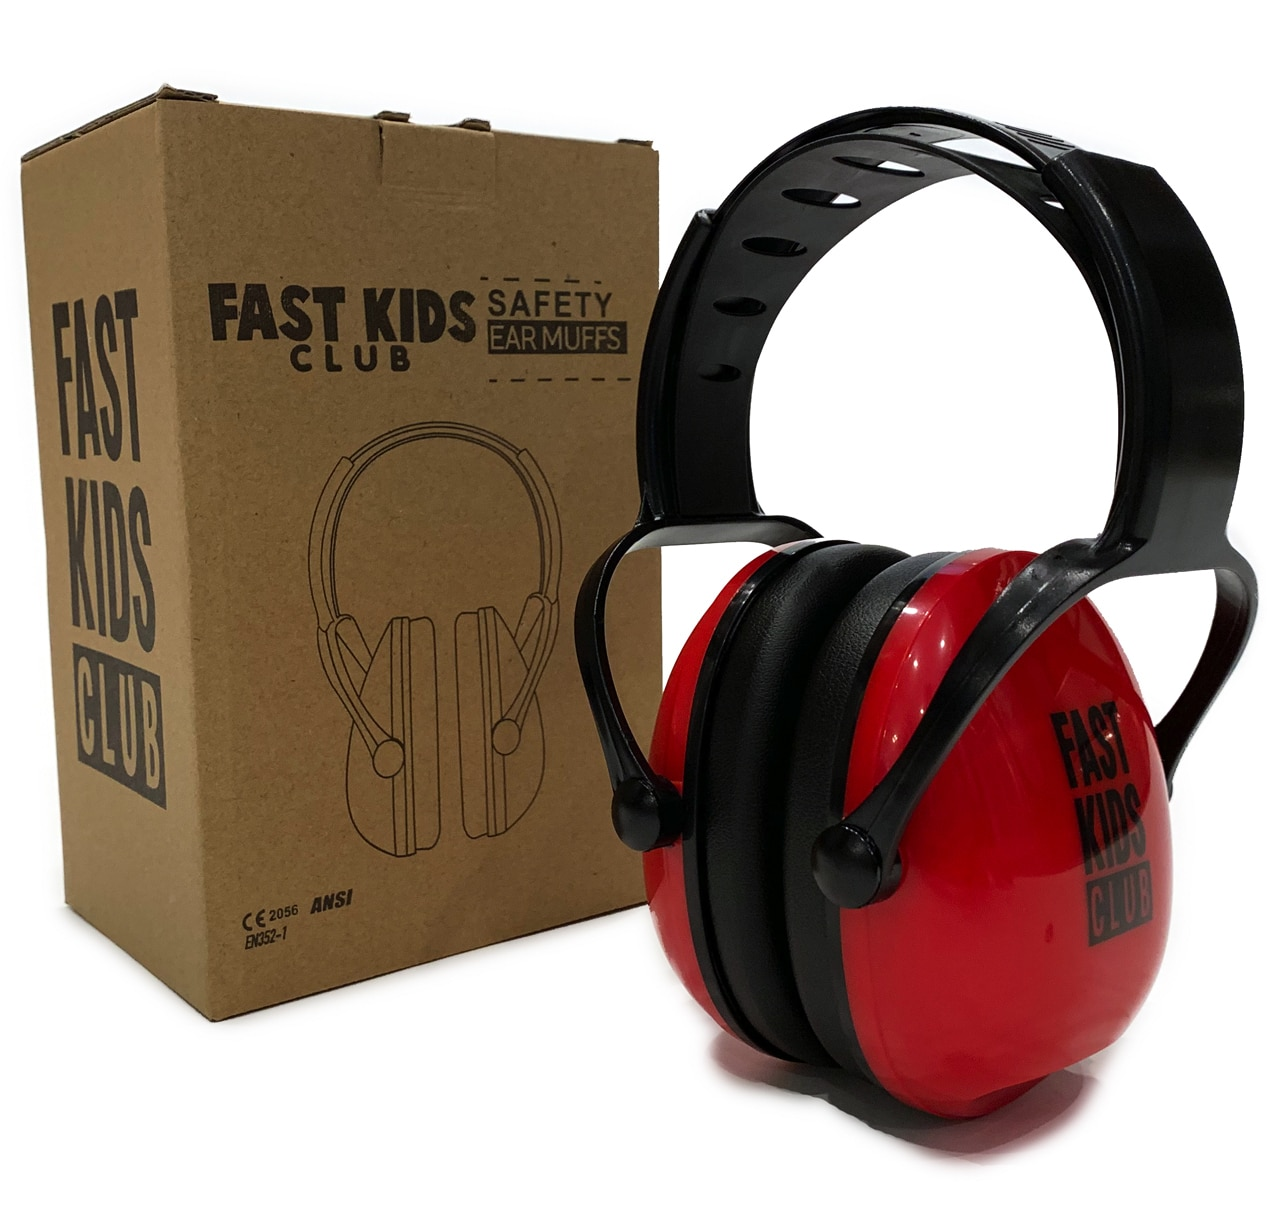 FAST KIDS CLUB SAFETY EARMUFFS (RED) - $19.99